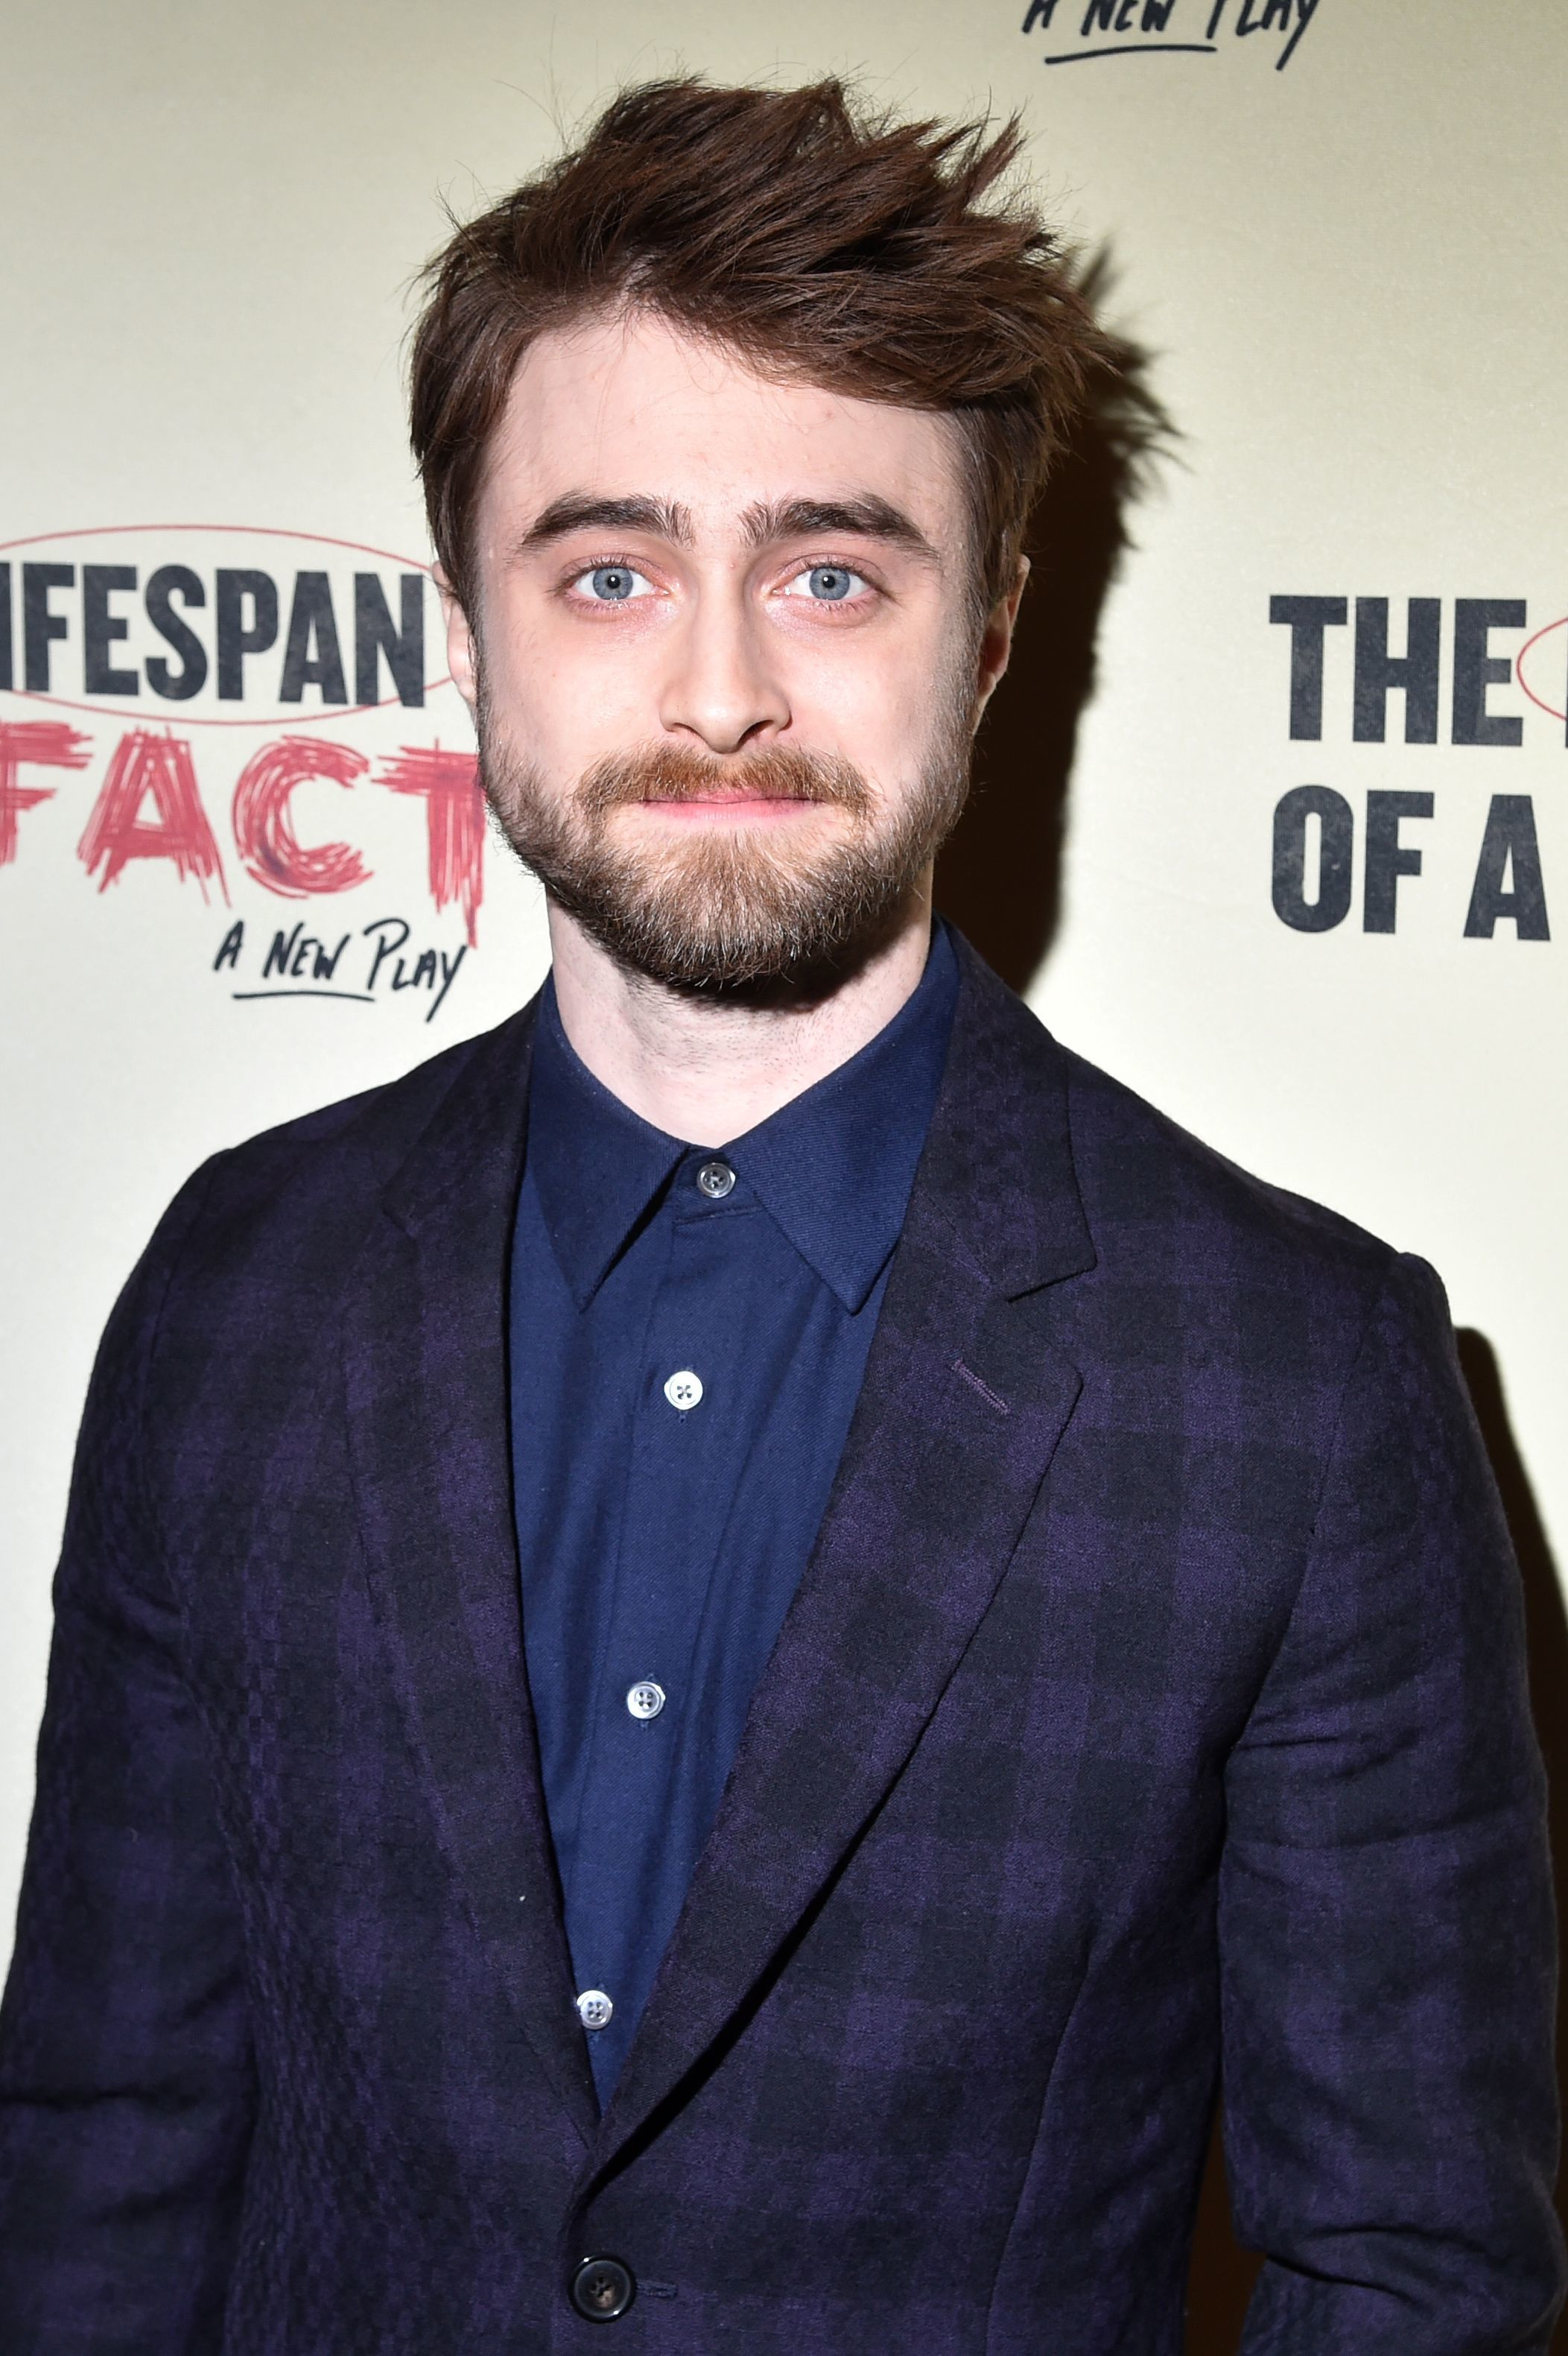 """Daniel Radcliffe attends the """"Lifespan of a Fact"""" opening night afterparty in New York City on Oct. 18, 2018."""